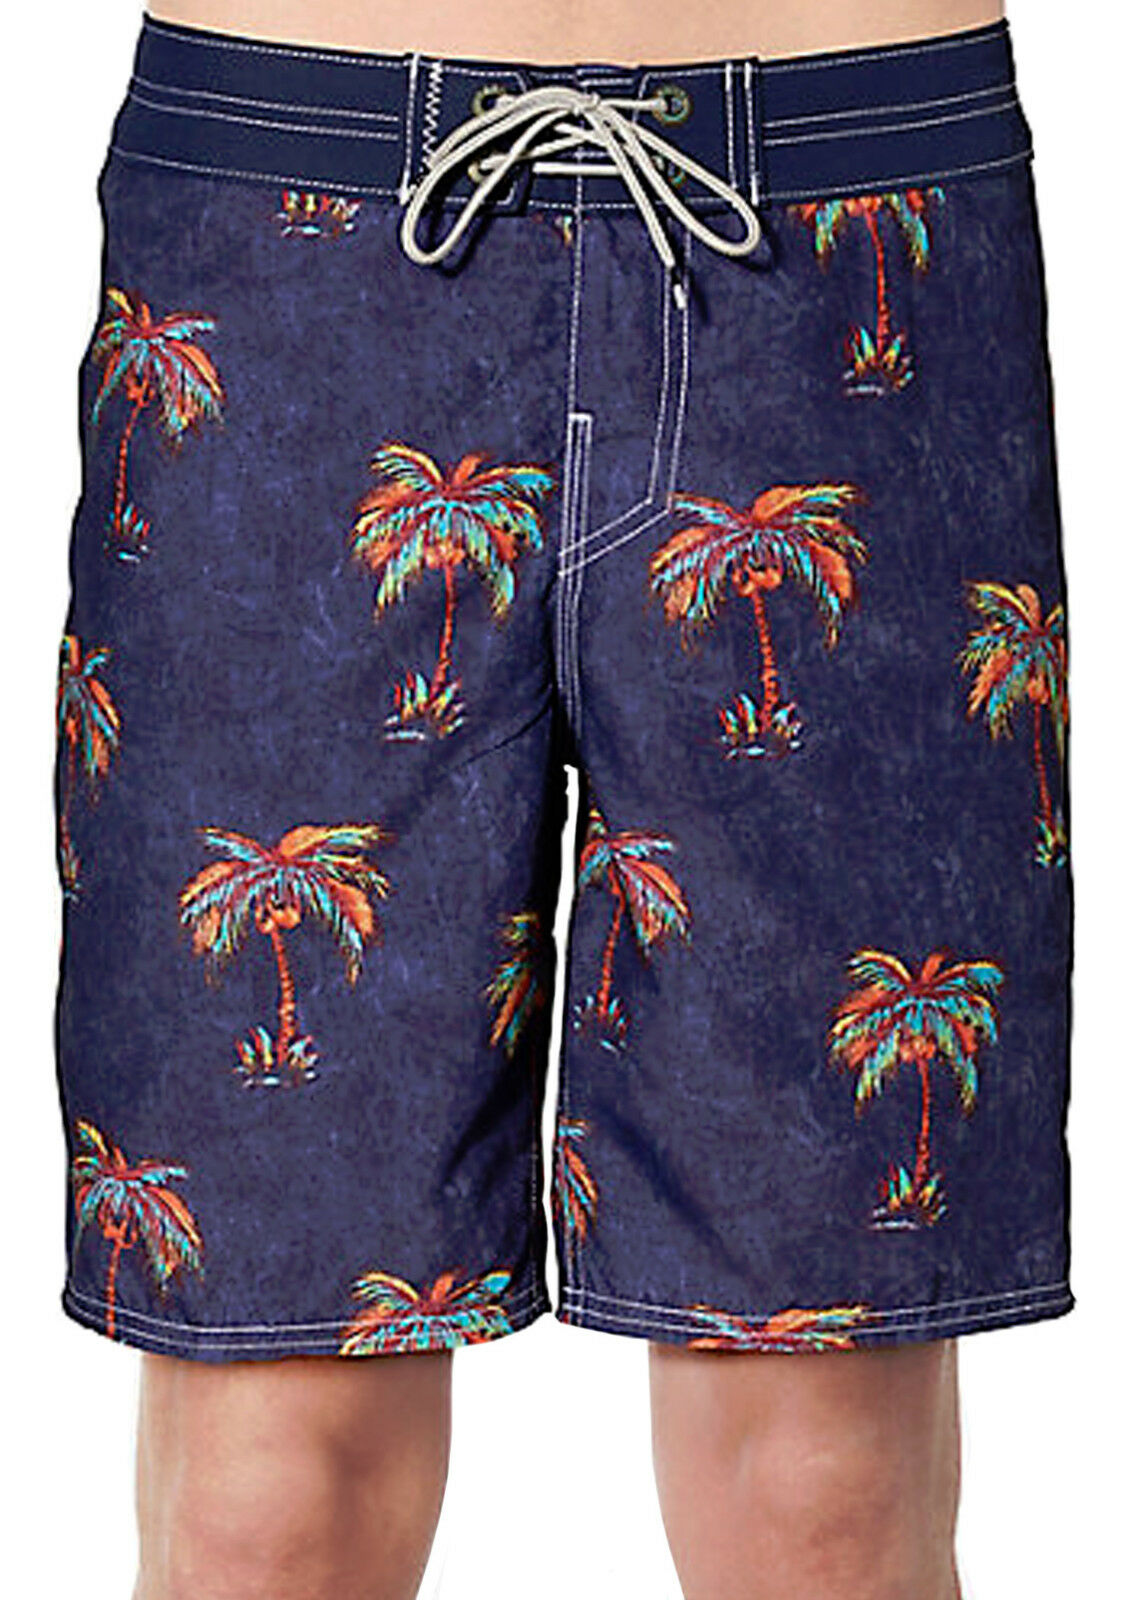 REEF Men's Boardshorts